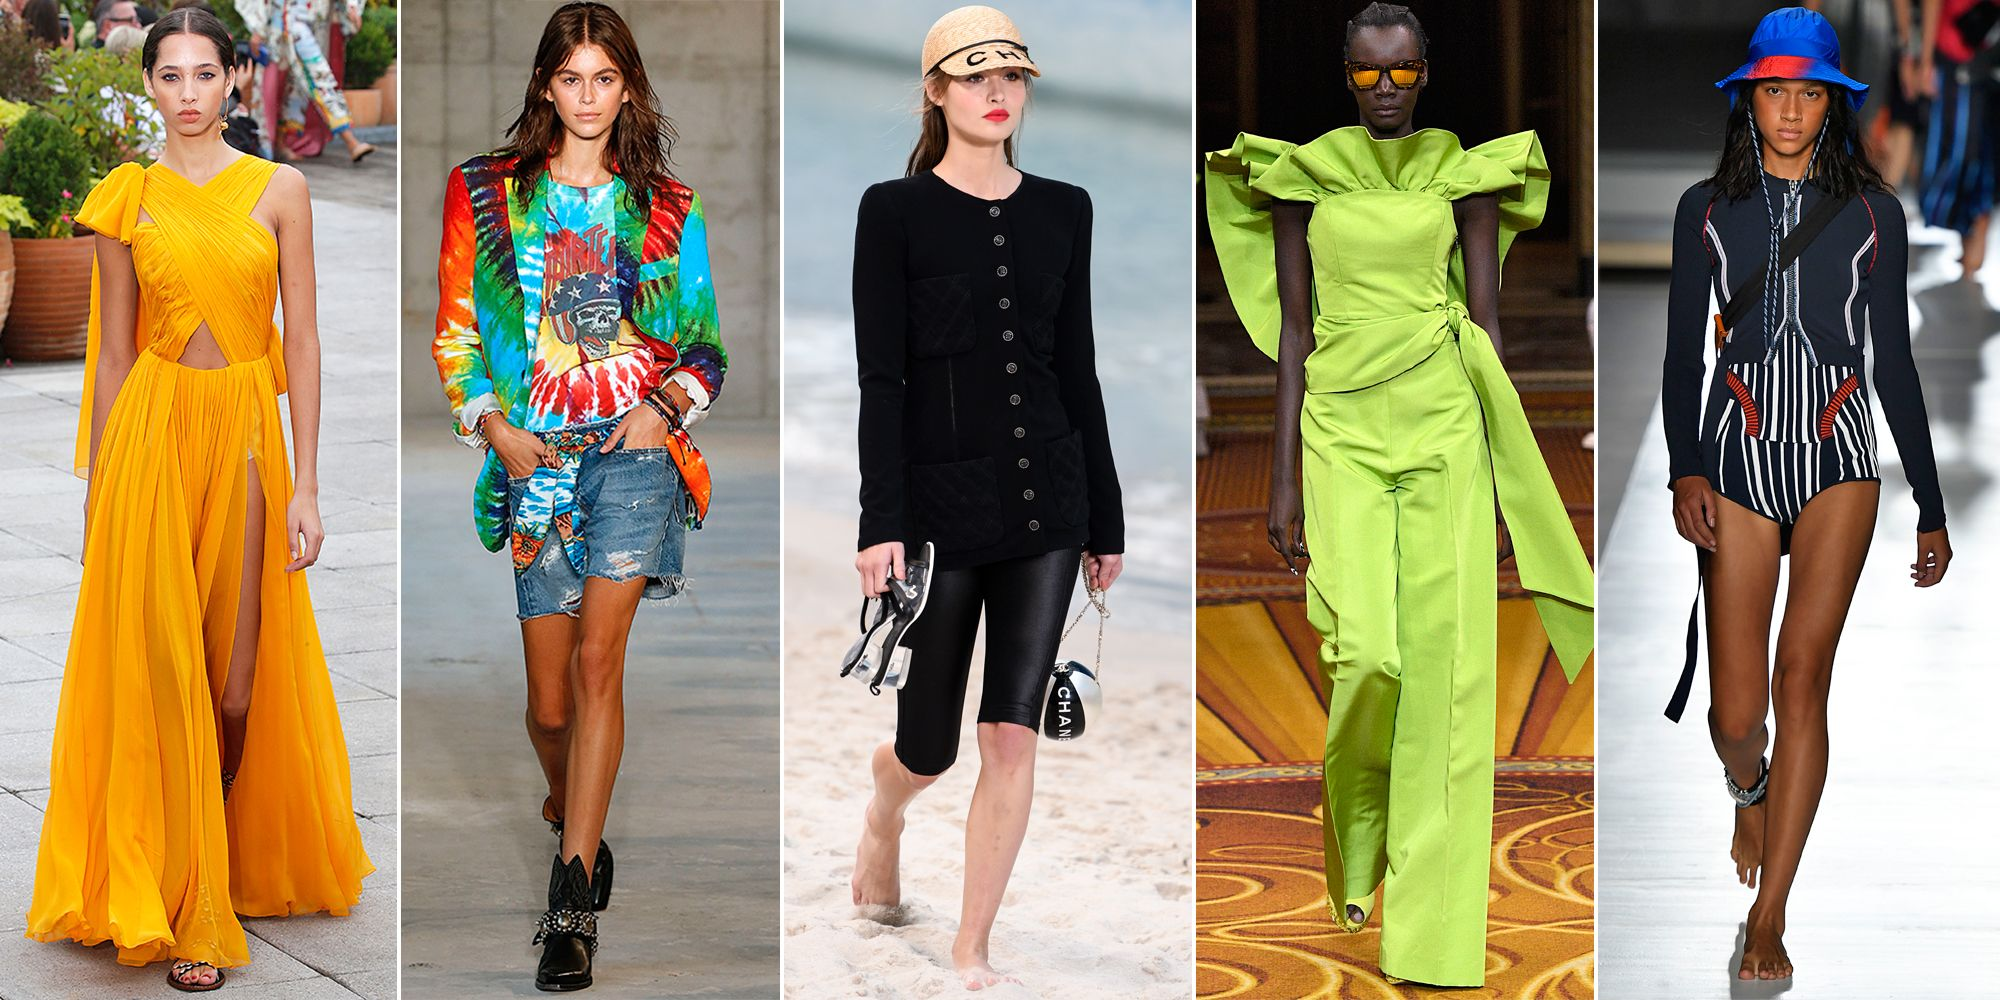 Spring Summer 2019 Fashion Trends: The Fashion Trends You